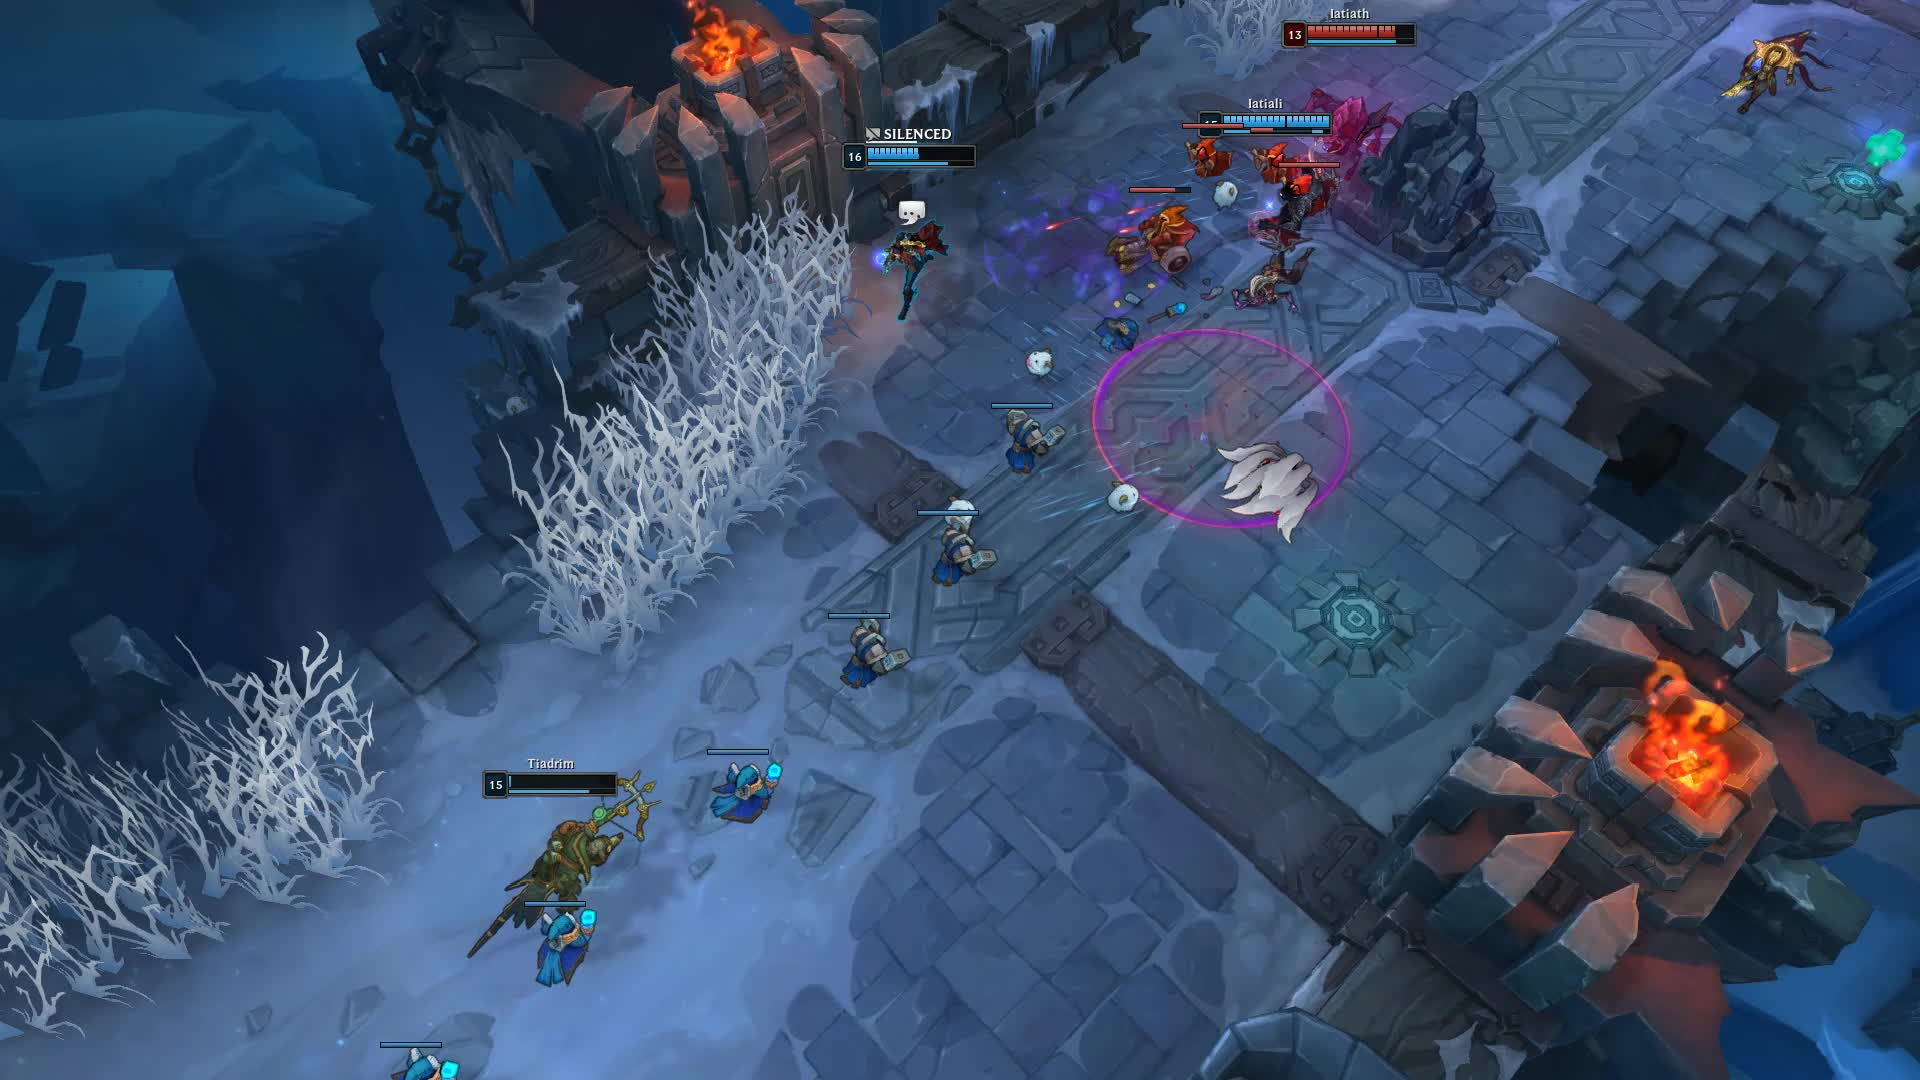 Entrybot64, Gaming, Gif Your Game, GifYourGame, League, League of Legends, LeagueOfLegends, LoL, Penta Kill, PentaKill, Penta Kill 1: Entrybot64 GIFs